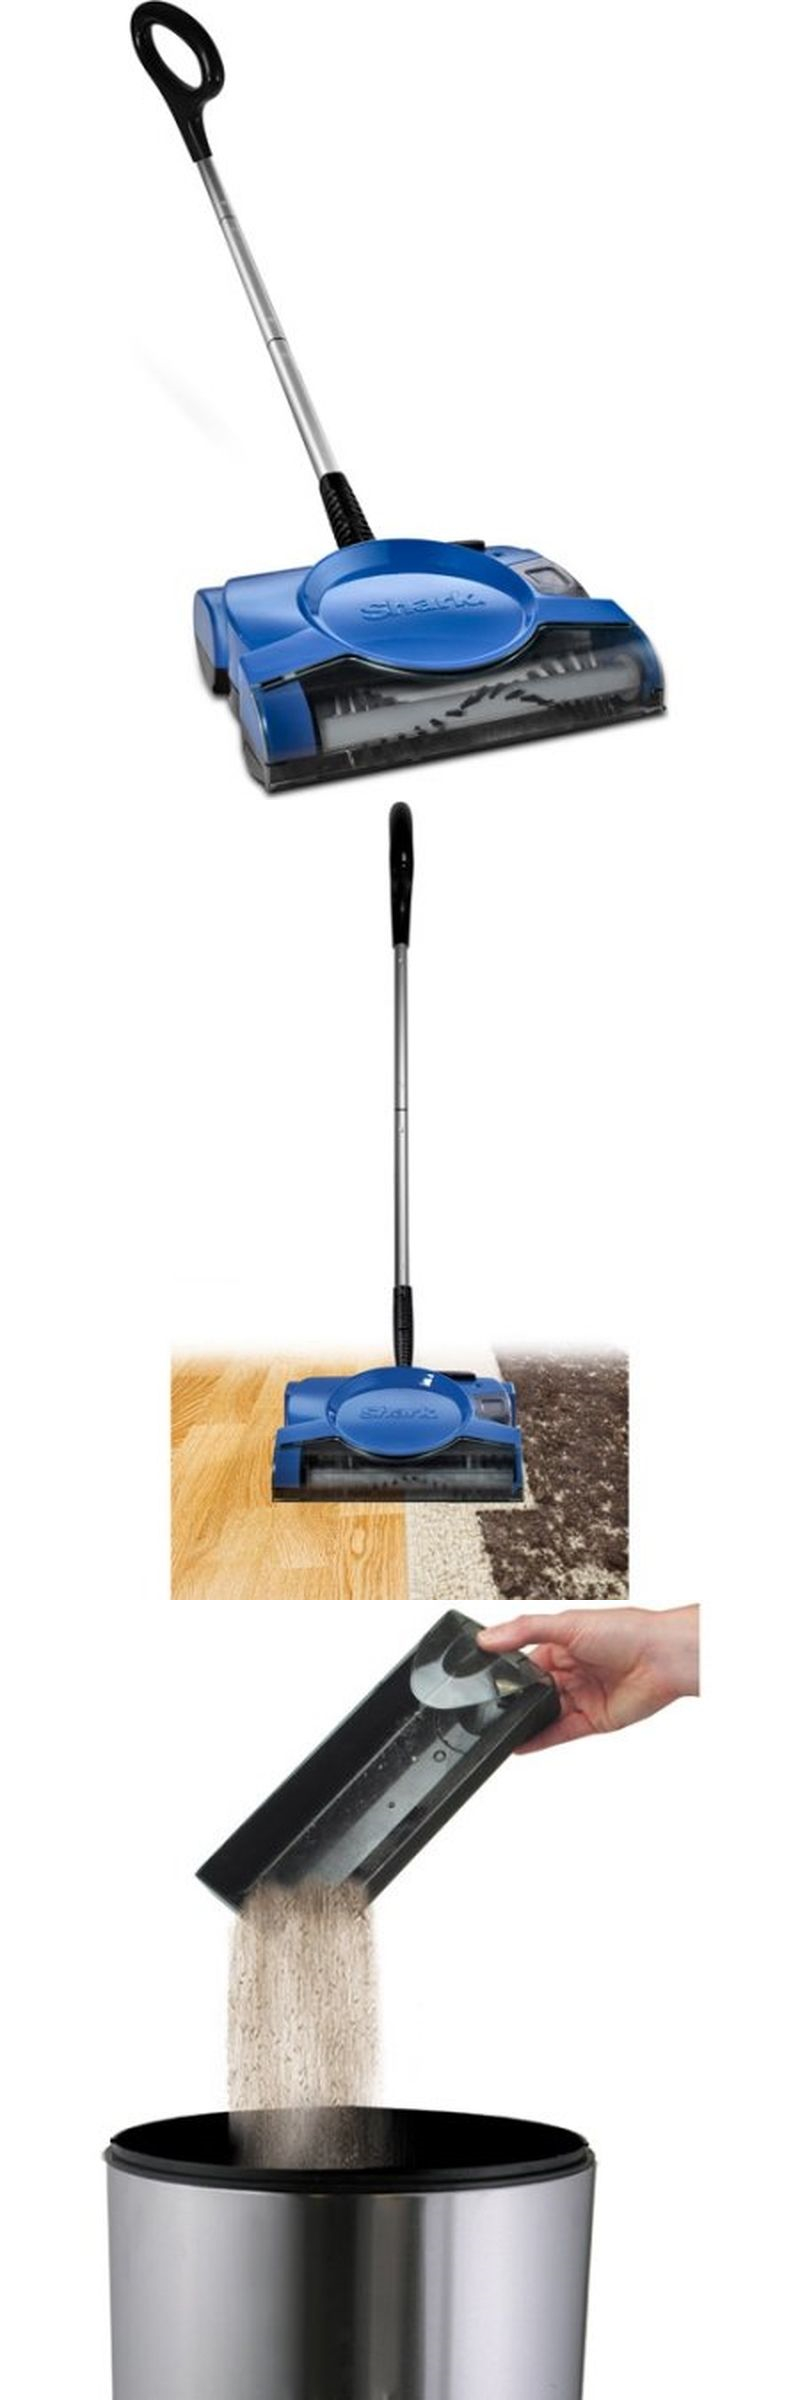 Carpet And Floor Sweepers 79657: Shark 10 Rechargeable Floor And Carpet  Sweeper, V2700z